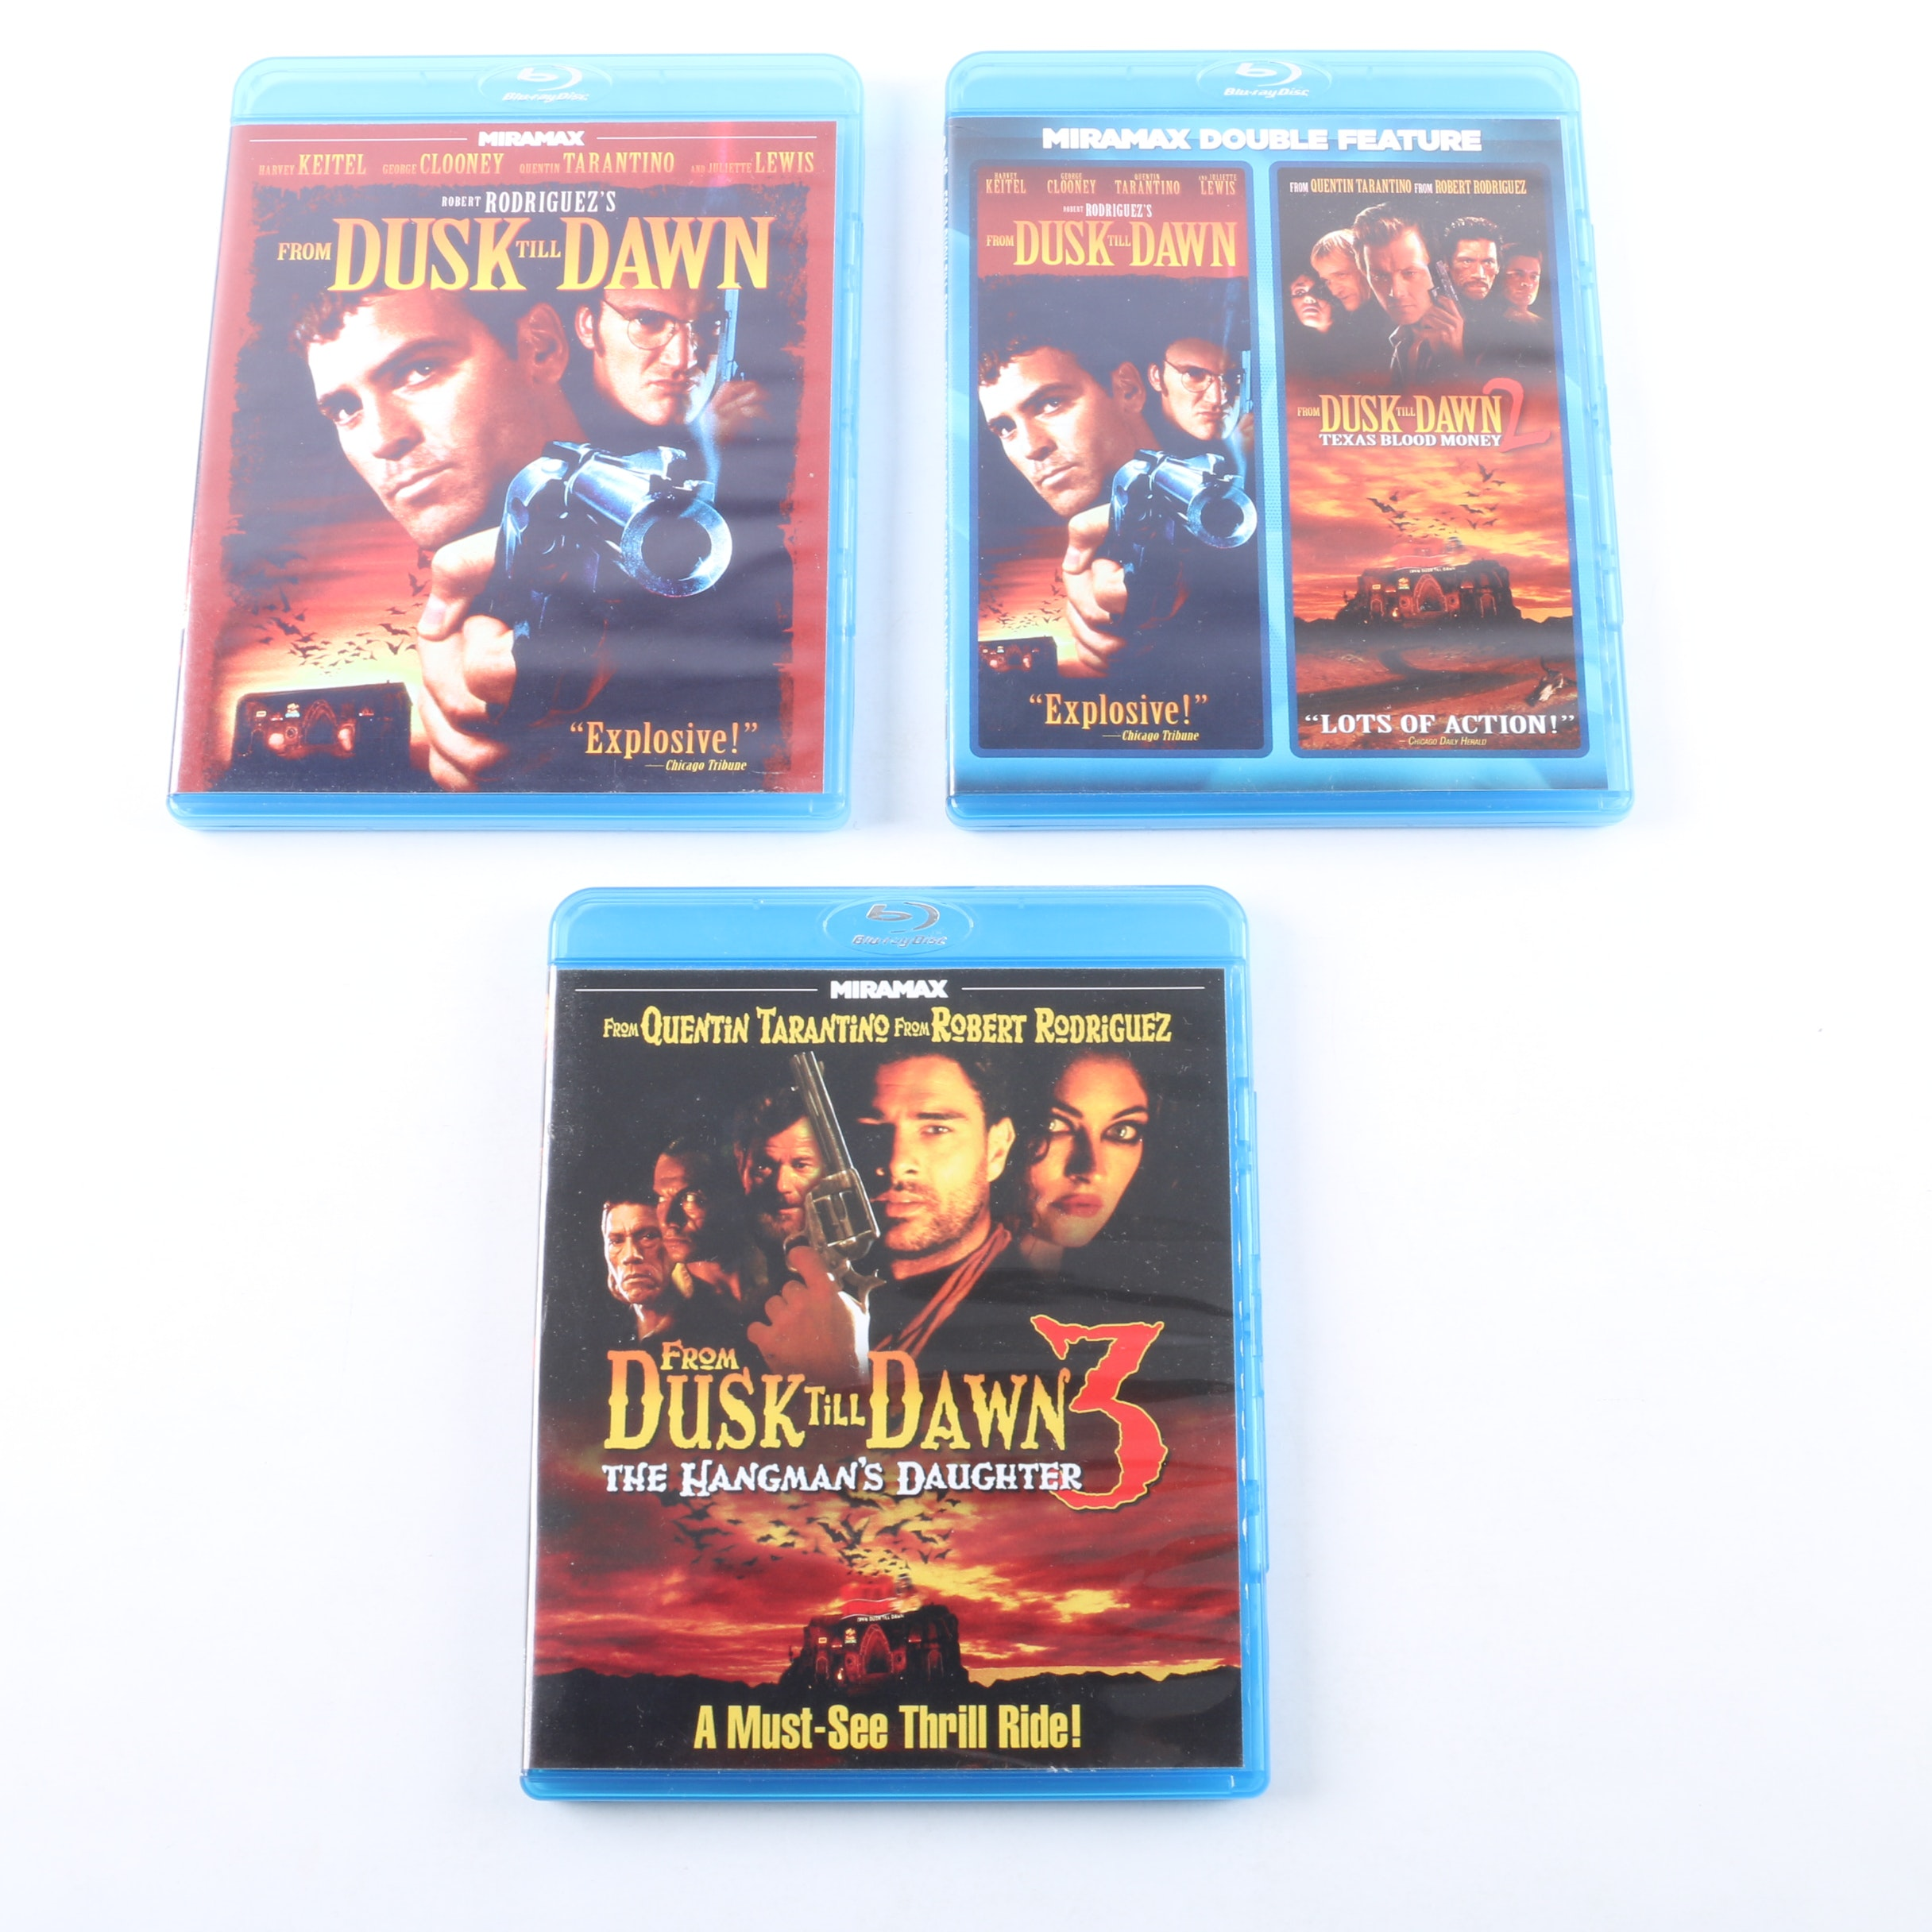 """From Dusk Till Dawn"" Film Series Blu-ray Collection"